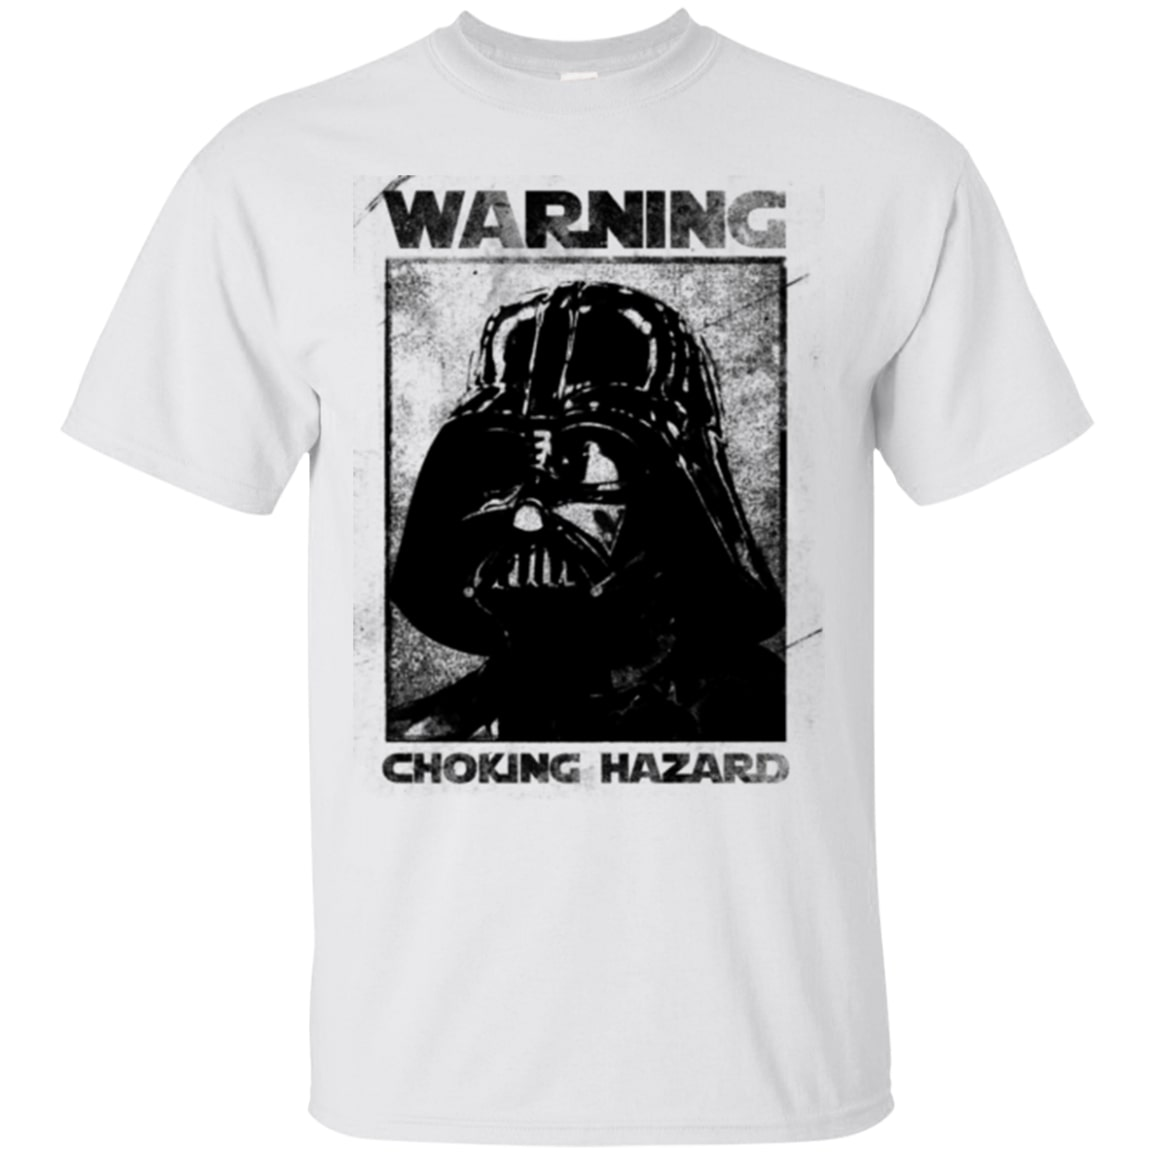 star wars darth vader warning choking hazard shirt 1